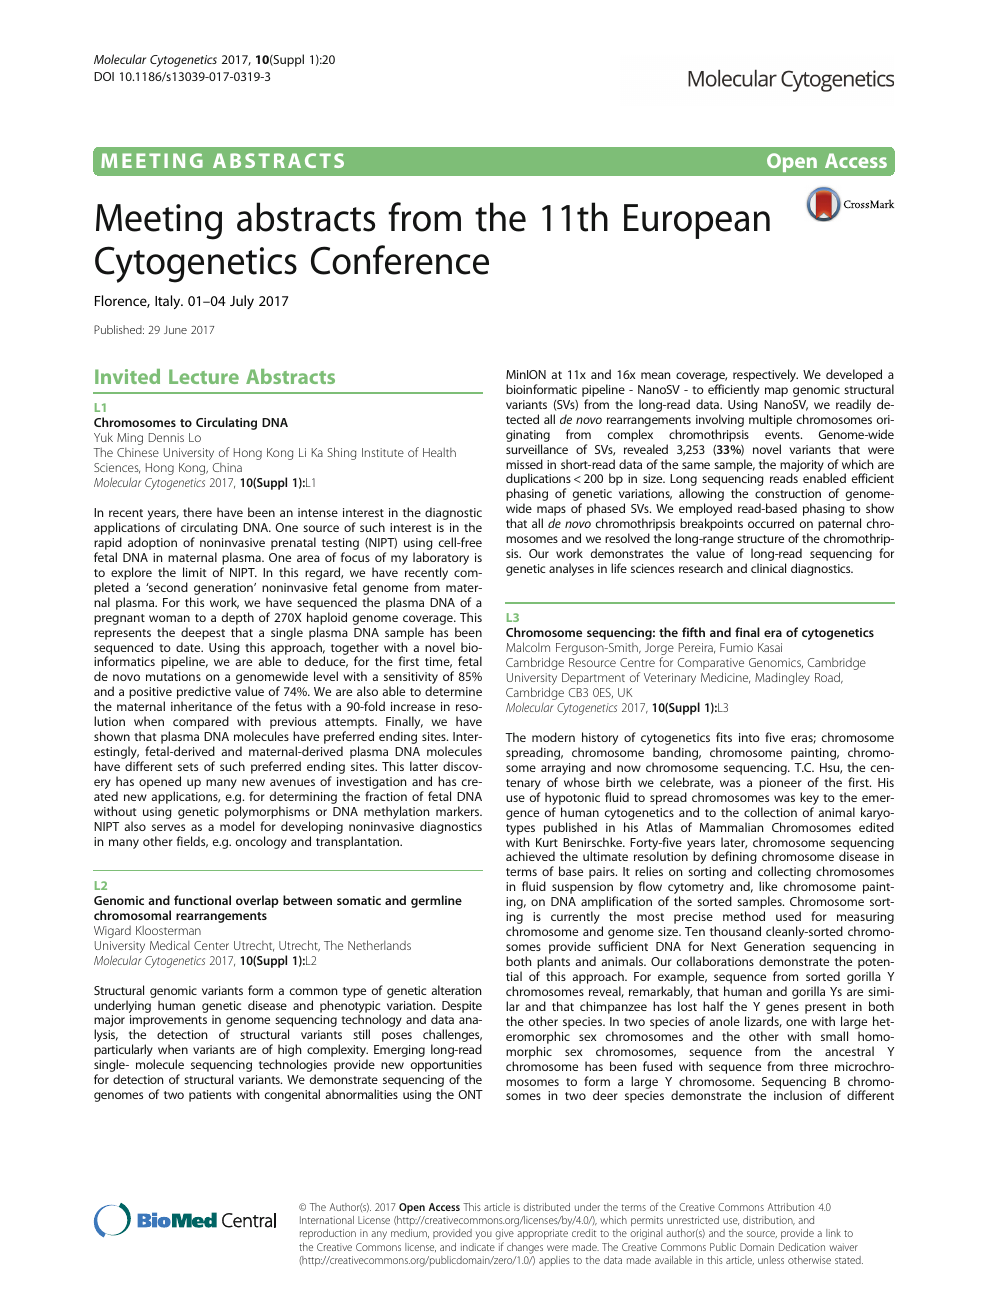 Meeting abstracts from the 11th European Cytogenetics